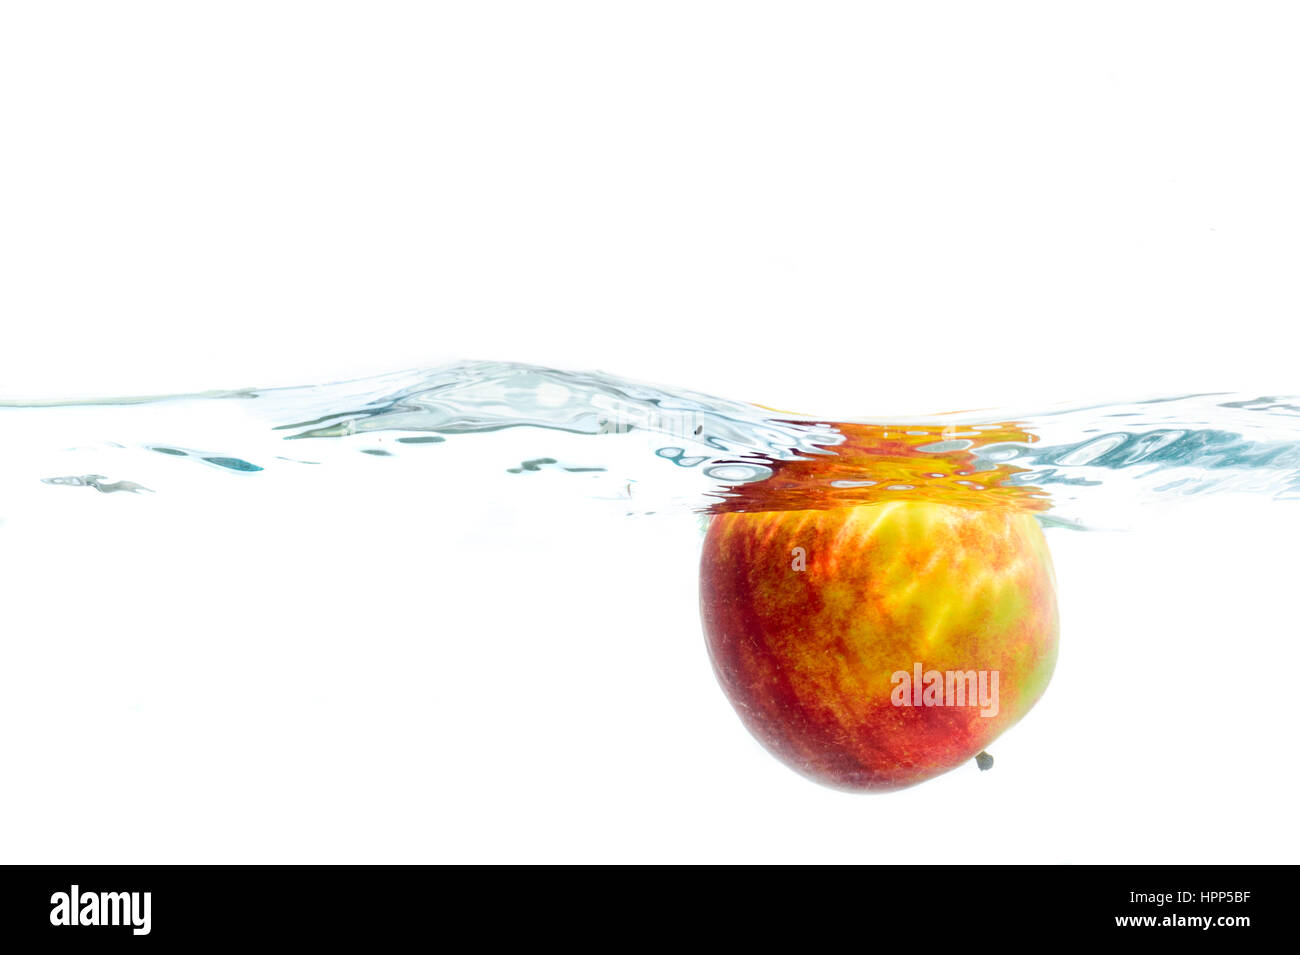 Fresh fruits immersed in clear water, studio shot on white background - Stock Image